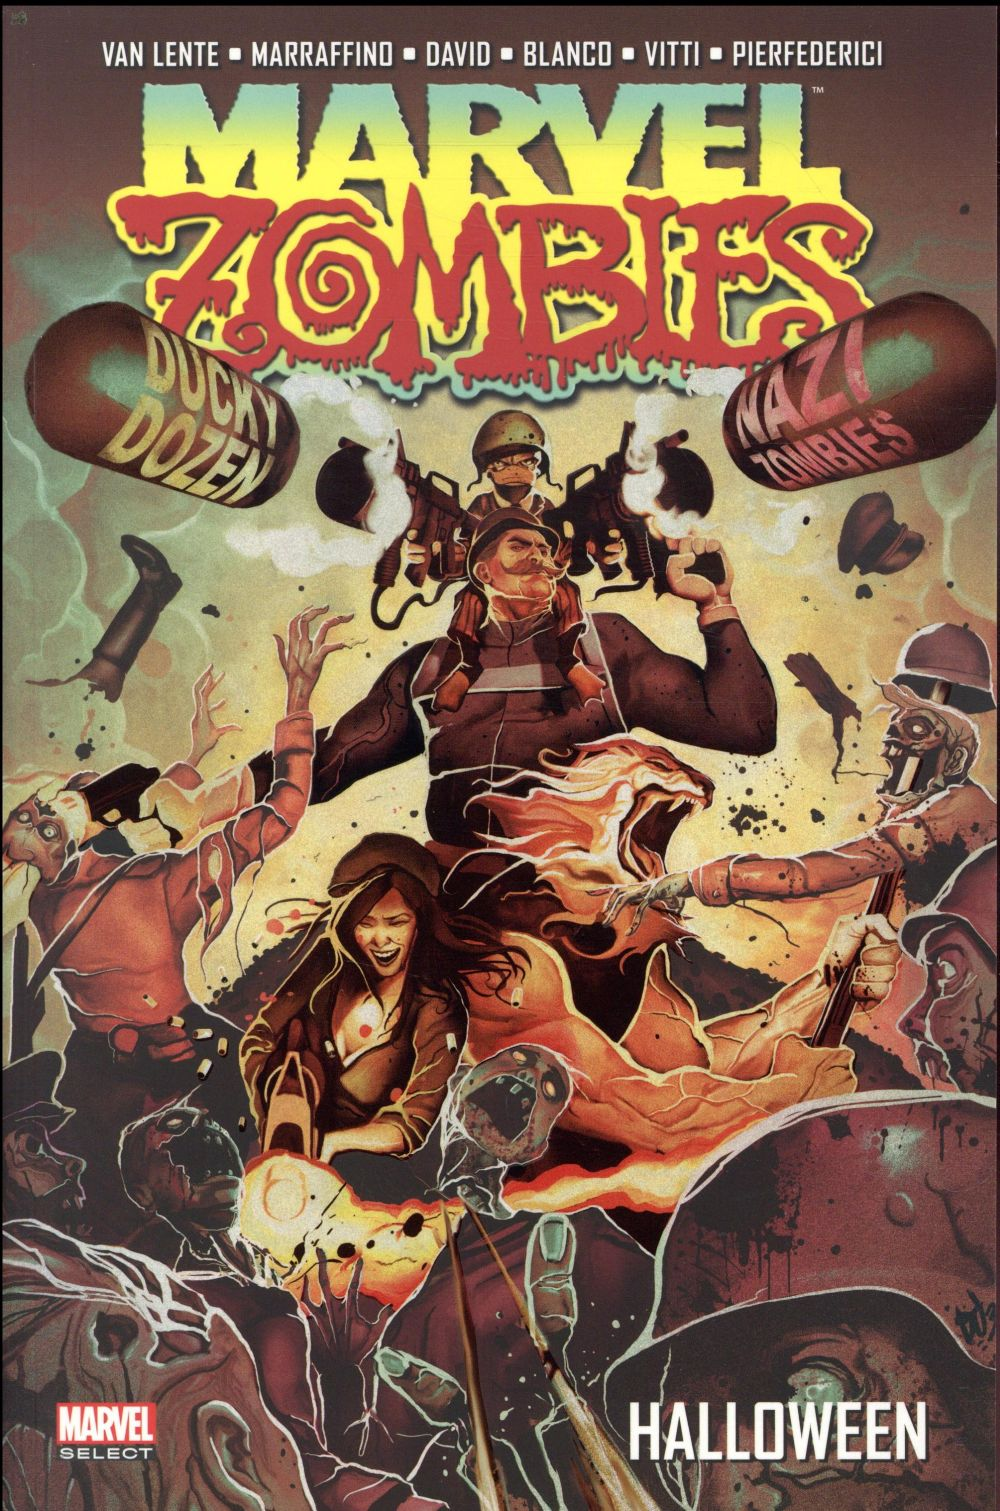 MARVEL ZOMBIES T.4  -  HALLOWEEN  MARRAFFINO, FRANKLIN